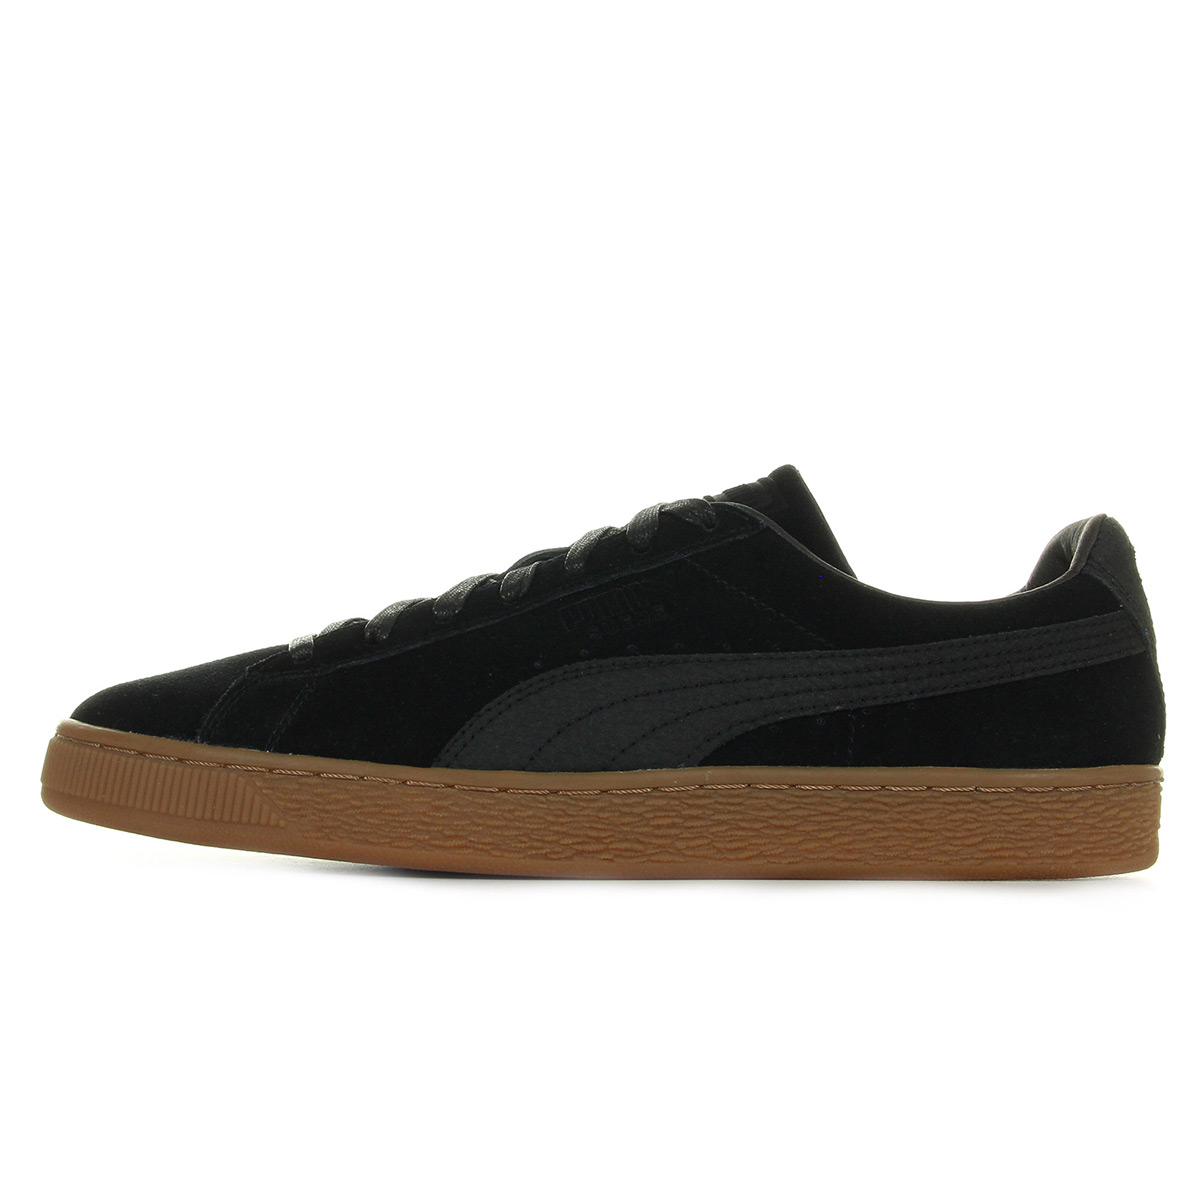 Puma Suede Classic Organic Warmth 36386904, Baskets mode homme